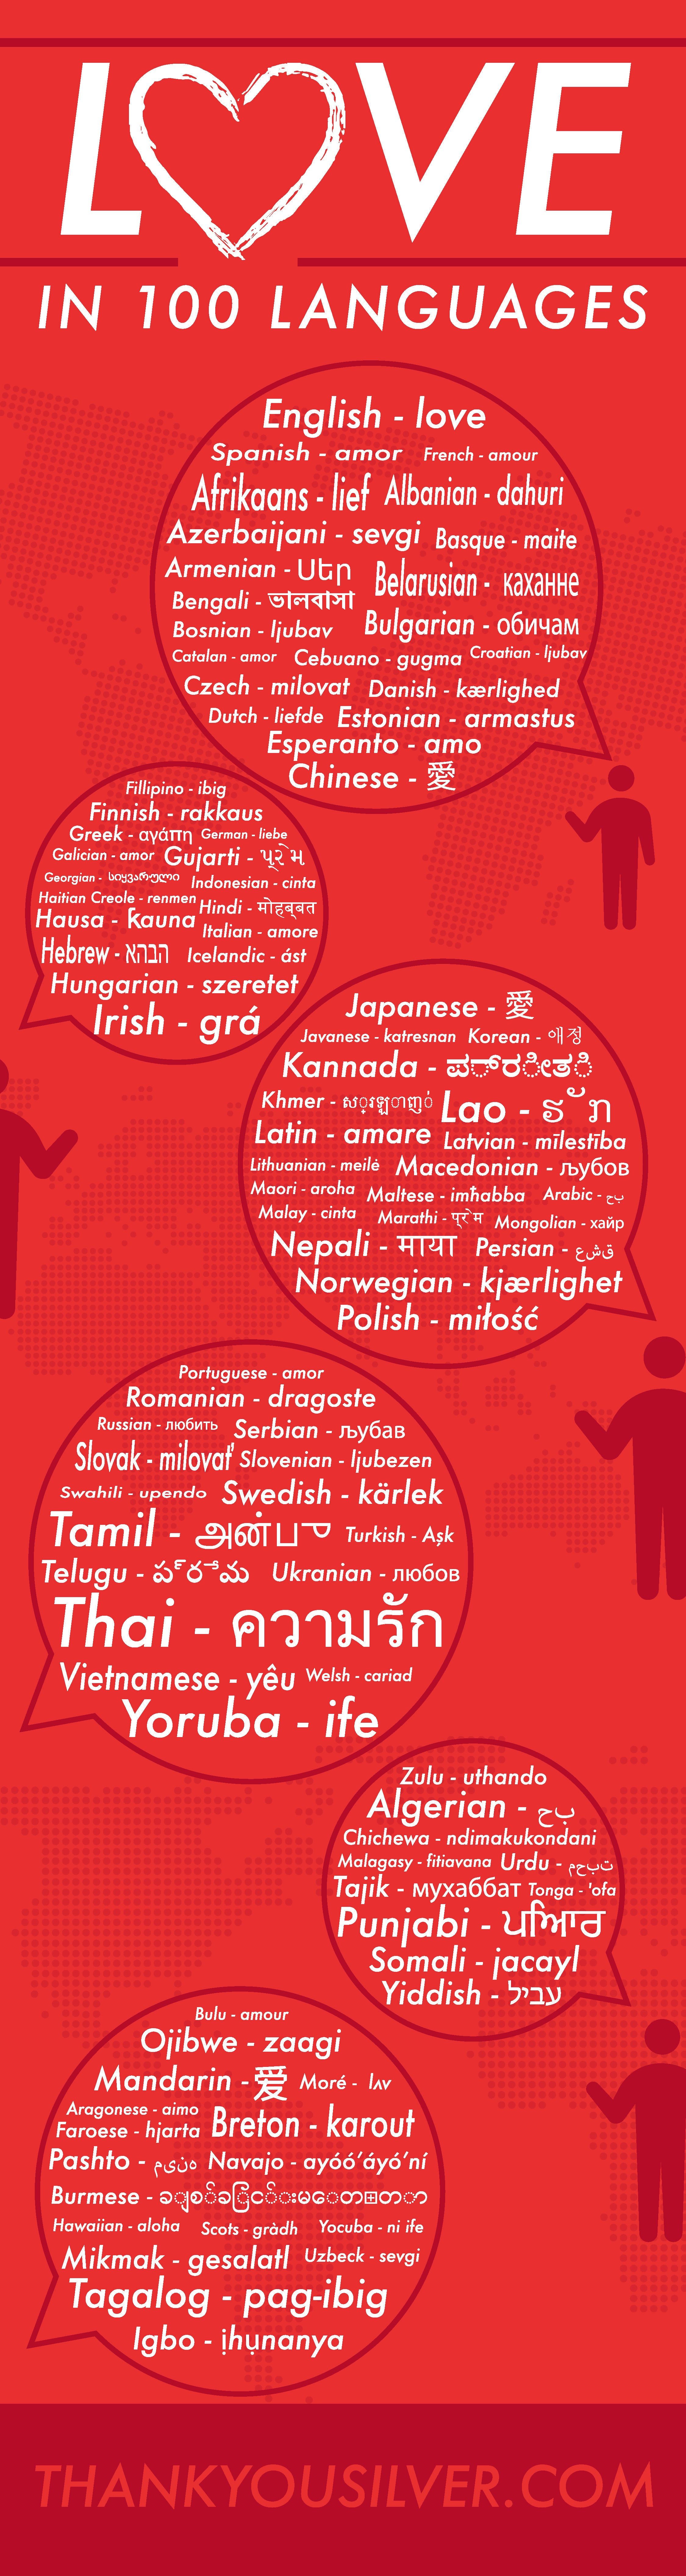 Love in 100 Languages